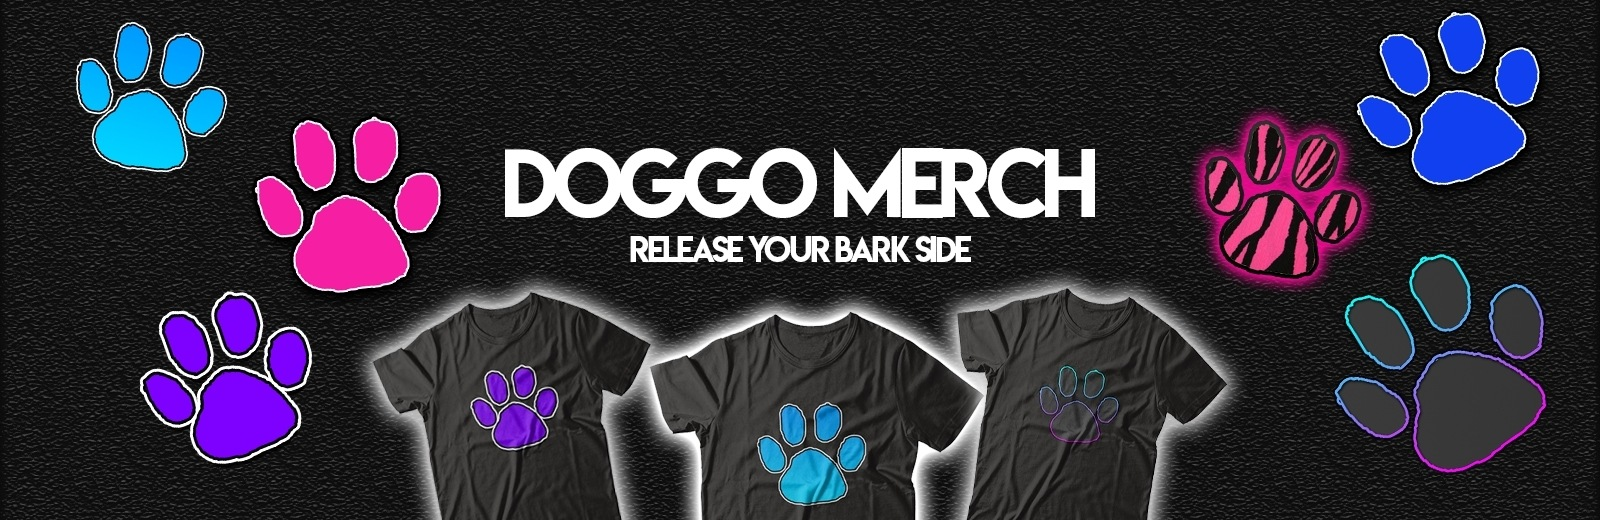 Doggo Merch Store